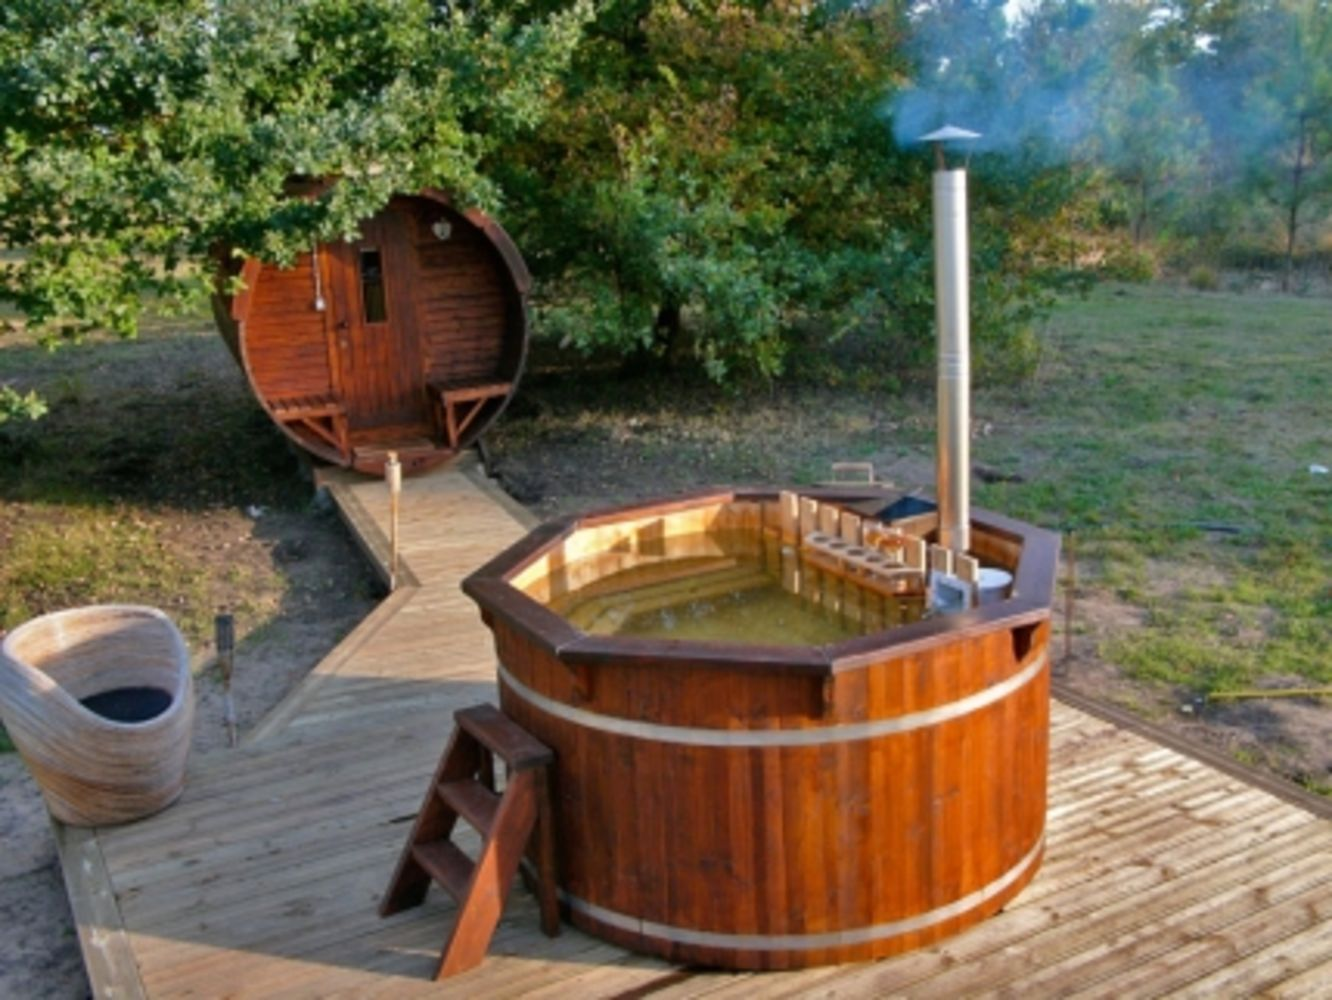 BRAND NEW Luxury Spruce Hot Tubs - Range Of Sizes & Specs + Modern Designer Patio Heaters From High End Gardening Company